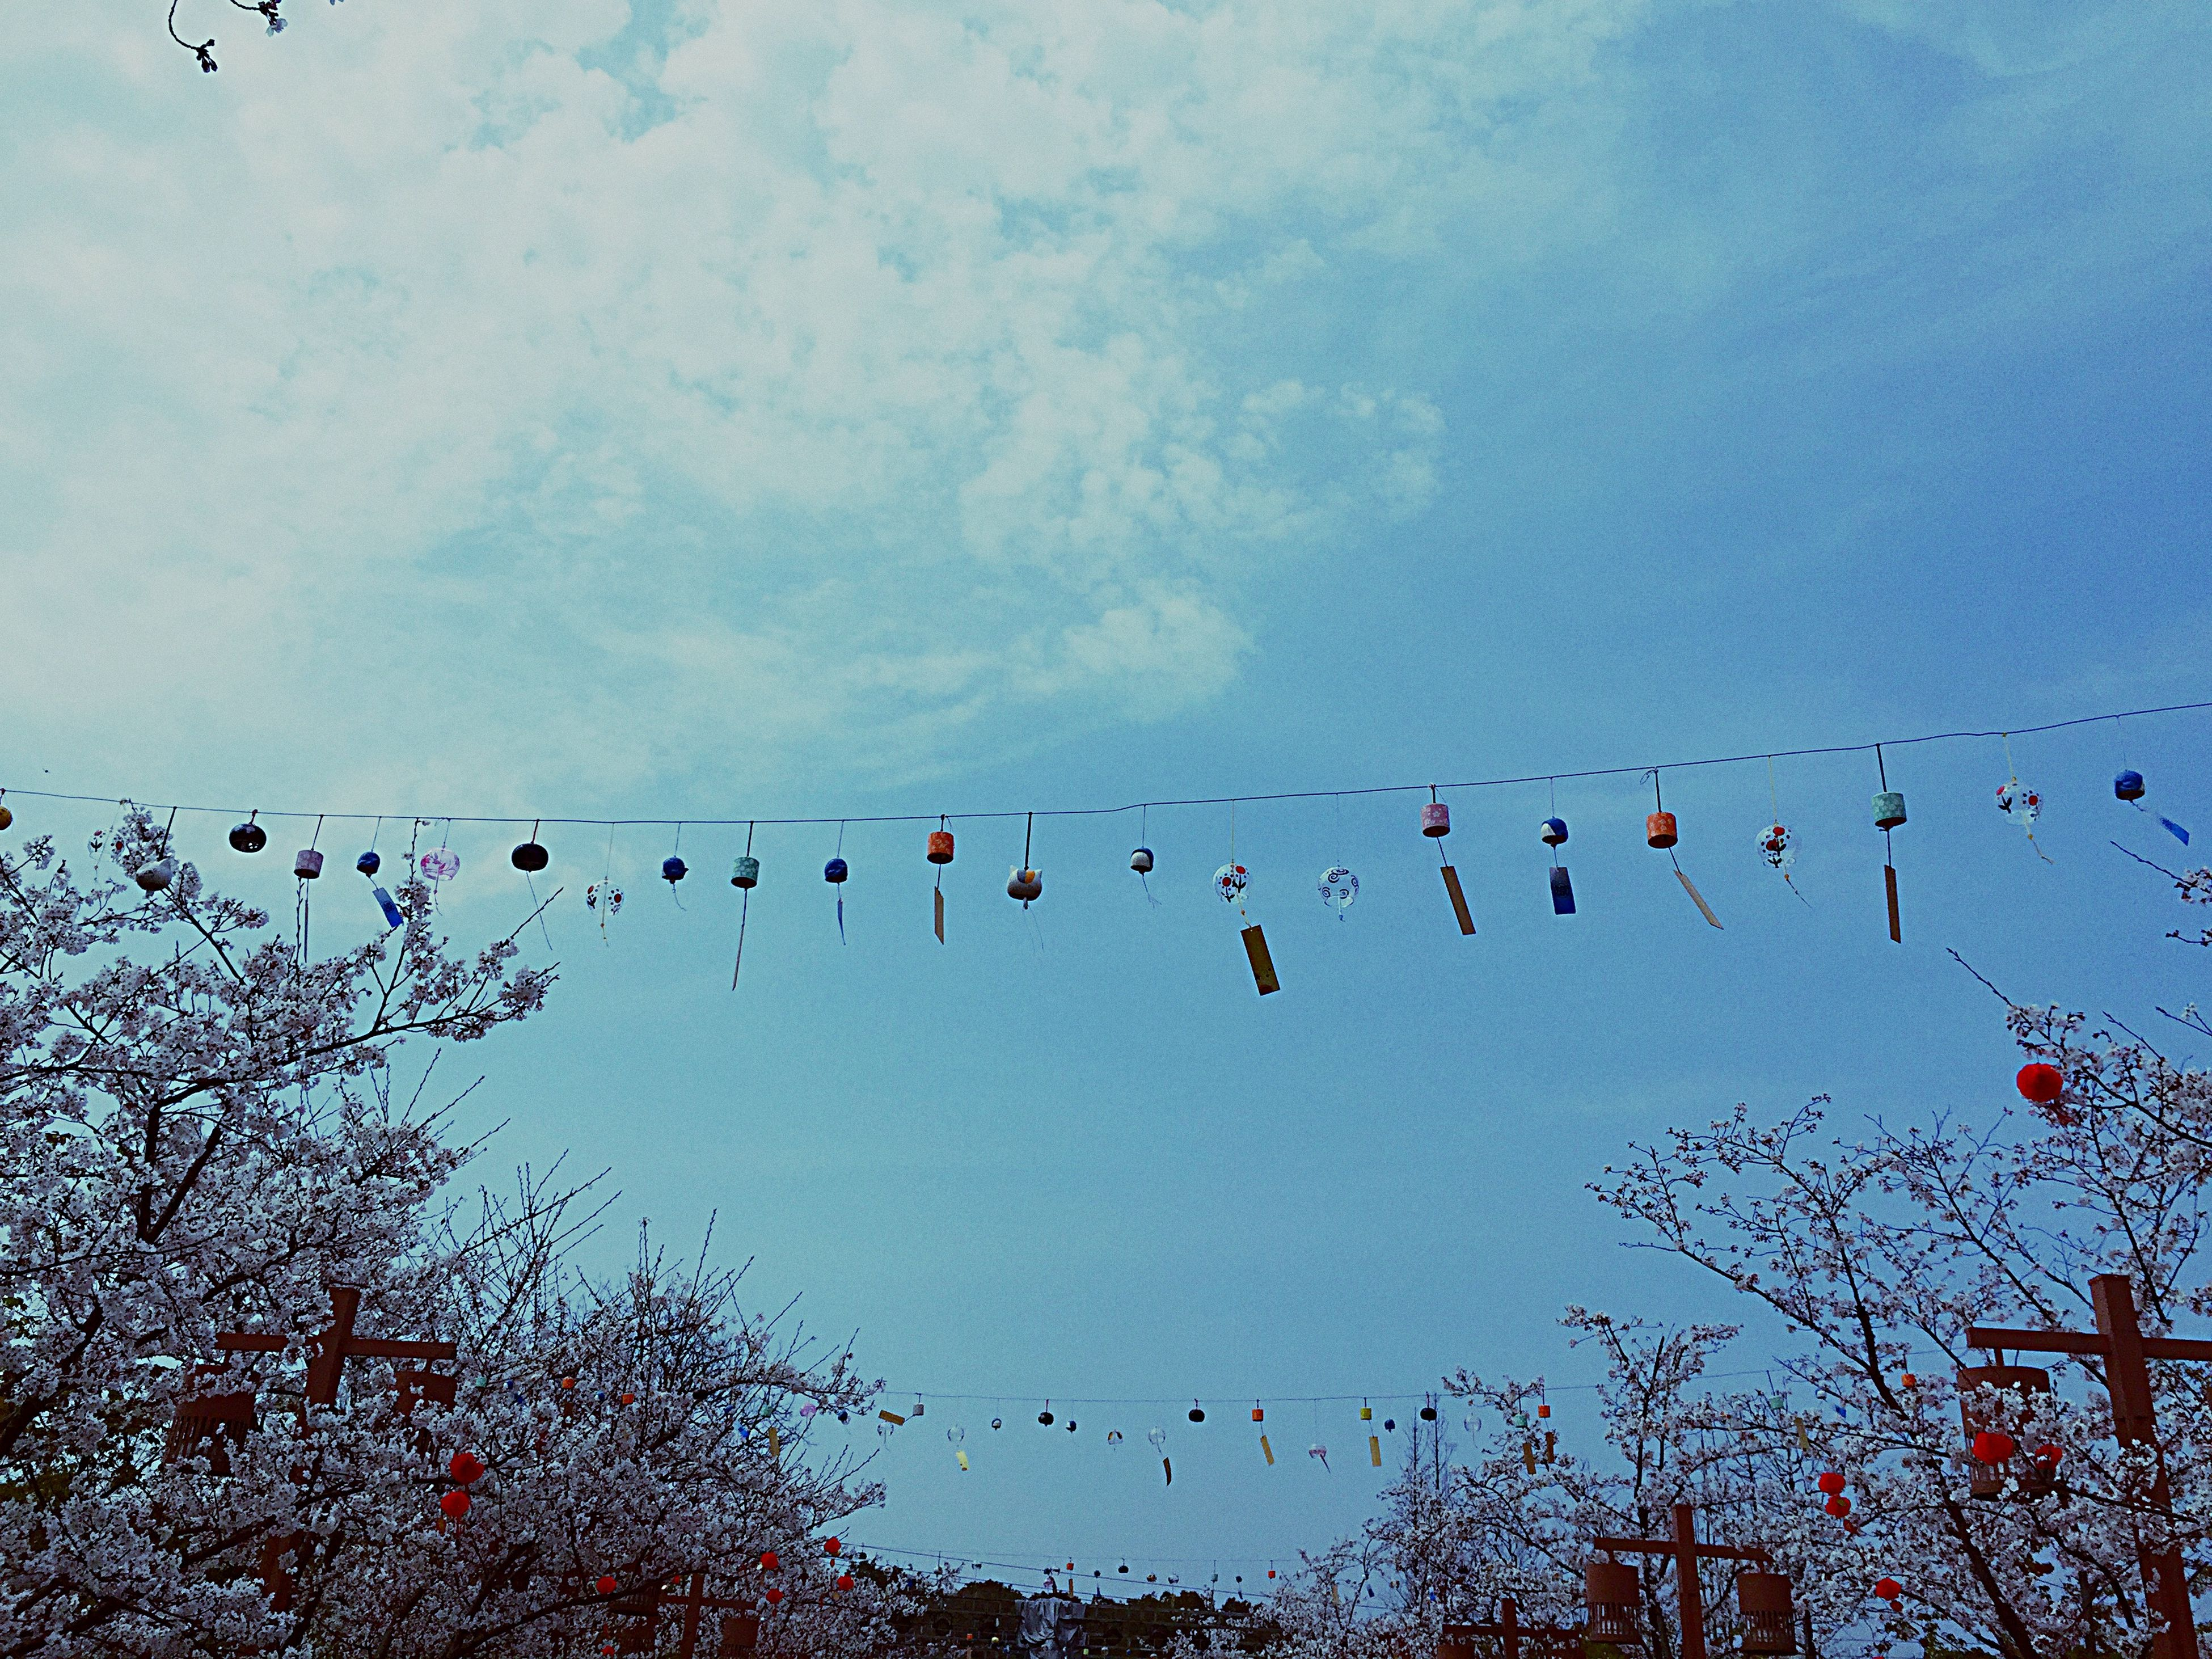 flying, bird, flock of birds, low angle view, animal themes, animals in the wild, wildlife, sky, mid-air, nature, silhouette, tree, beauty in nature, cloud - sky, outdoors, blue, freedom, medium group of animals, no people